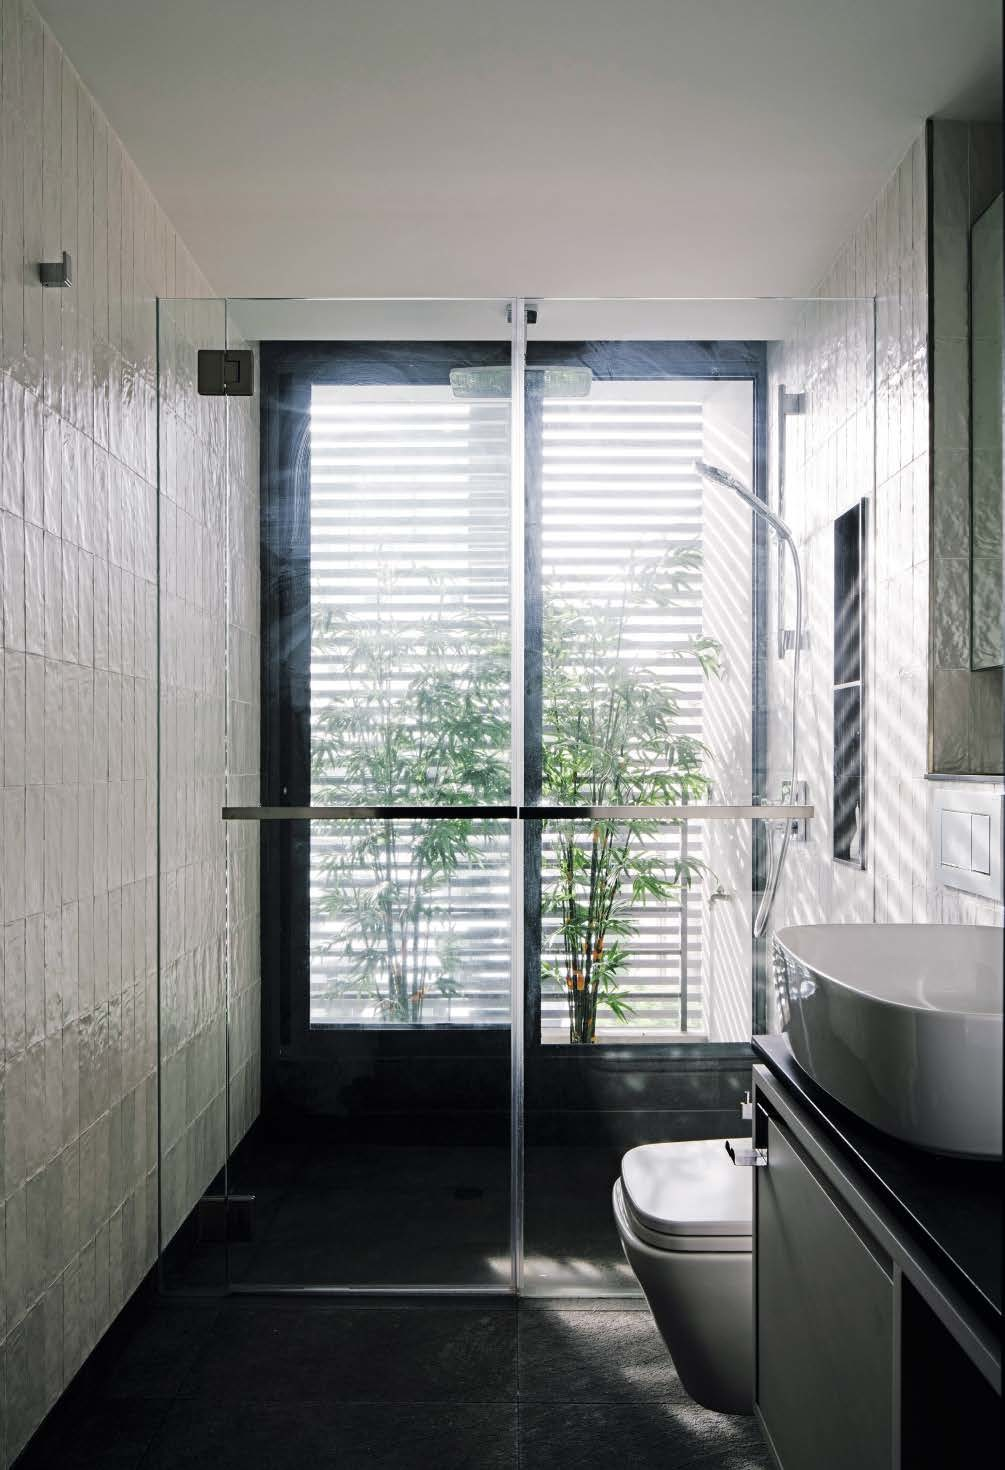 The screens on the building facade, together with the bamboo plants beside the shower, filter the light entering the master bath and create an interesting play of light and shadow.